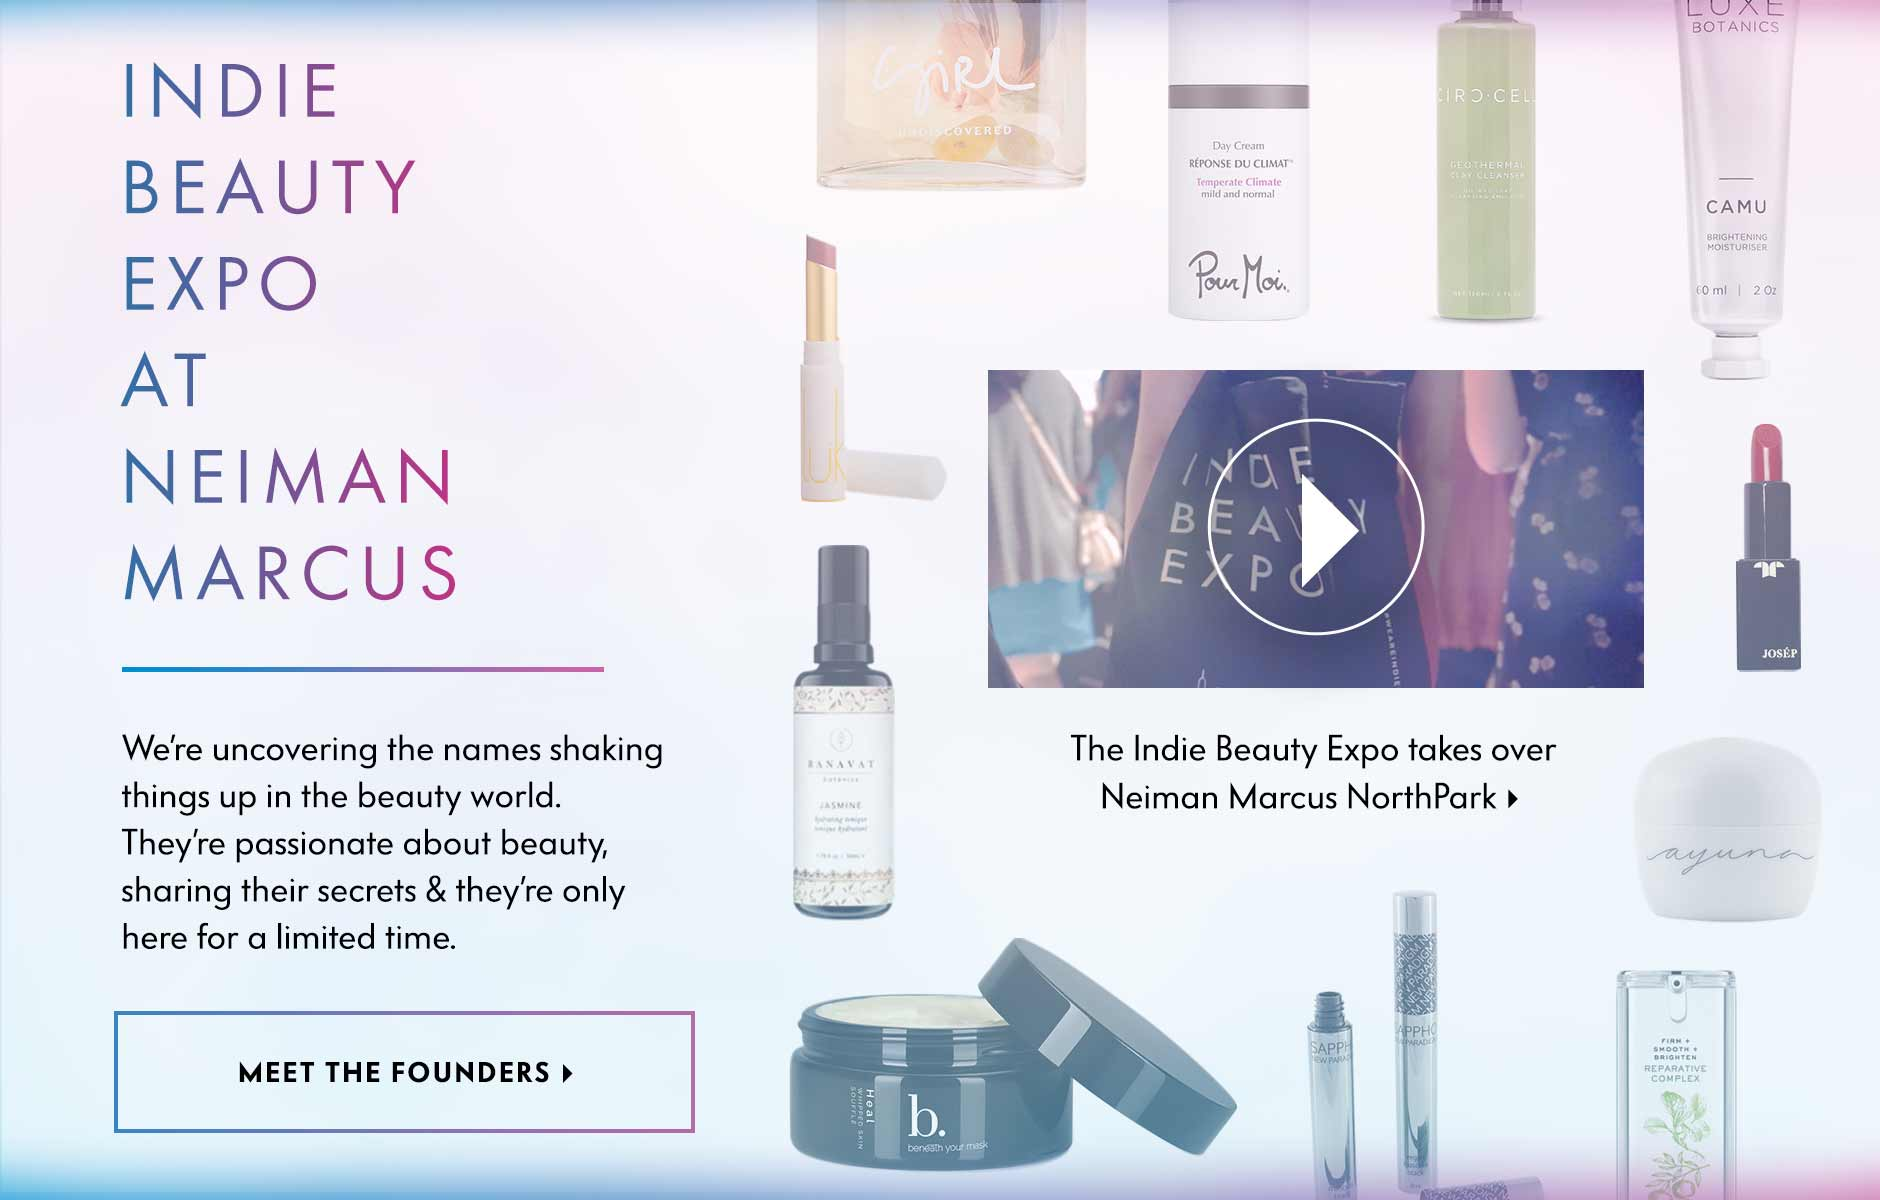 Indie Beauty Expo at Neiman Marcus - We're uncovering the names shaking things up in the beauty world. They're passionate about beauty, sharing their secrets & they're only here for a limited time.